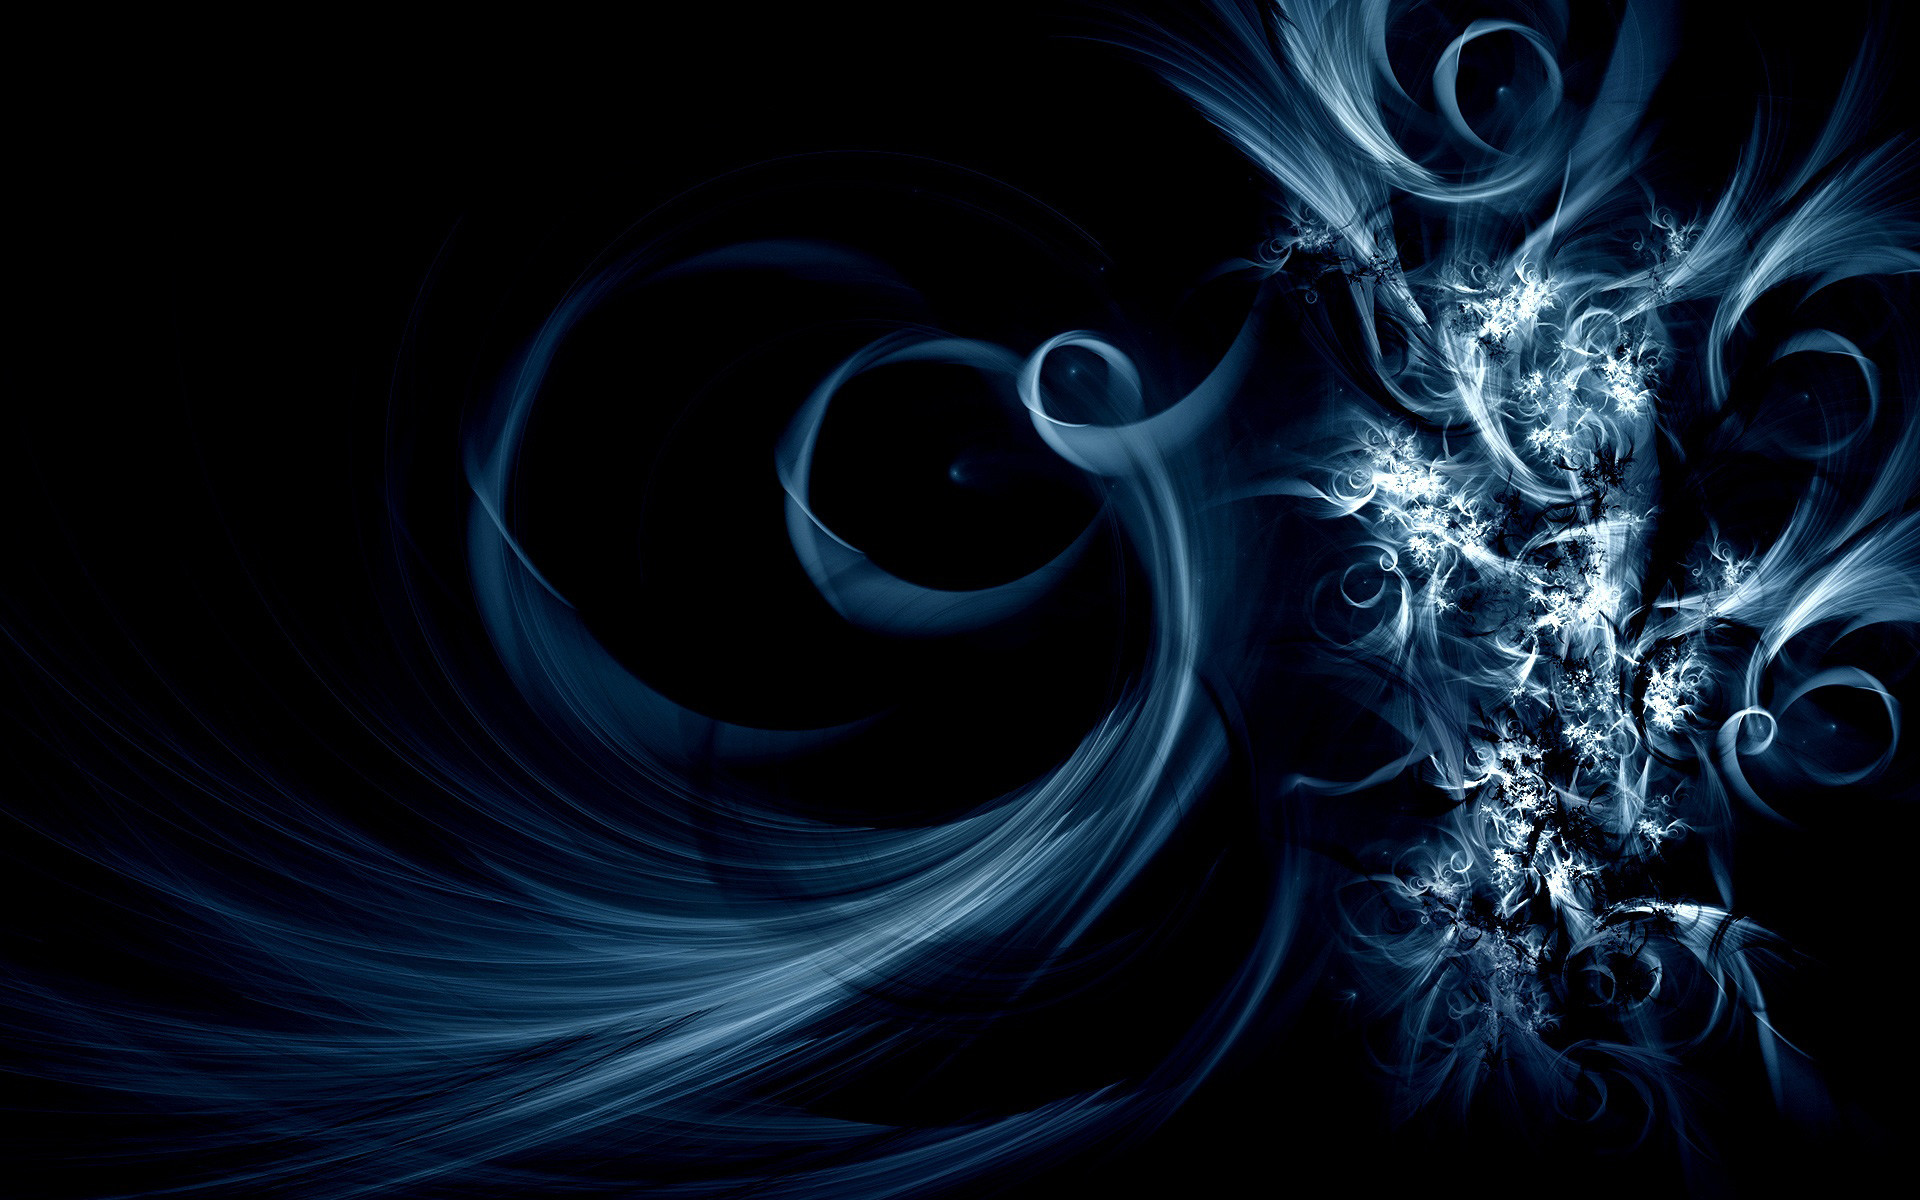 Dark Abstract Wallpaper 71 Images